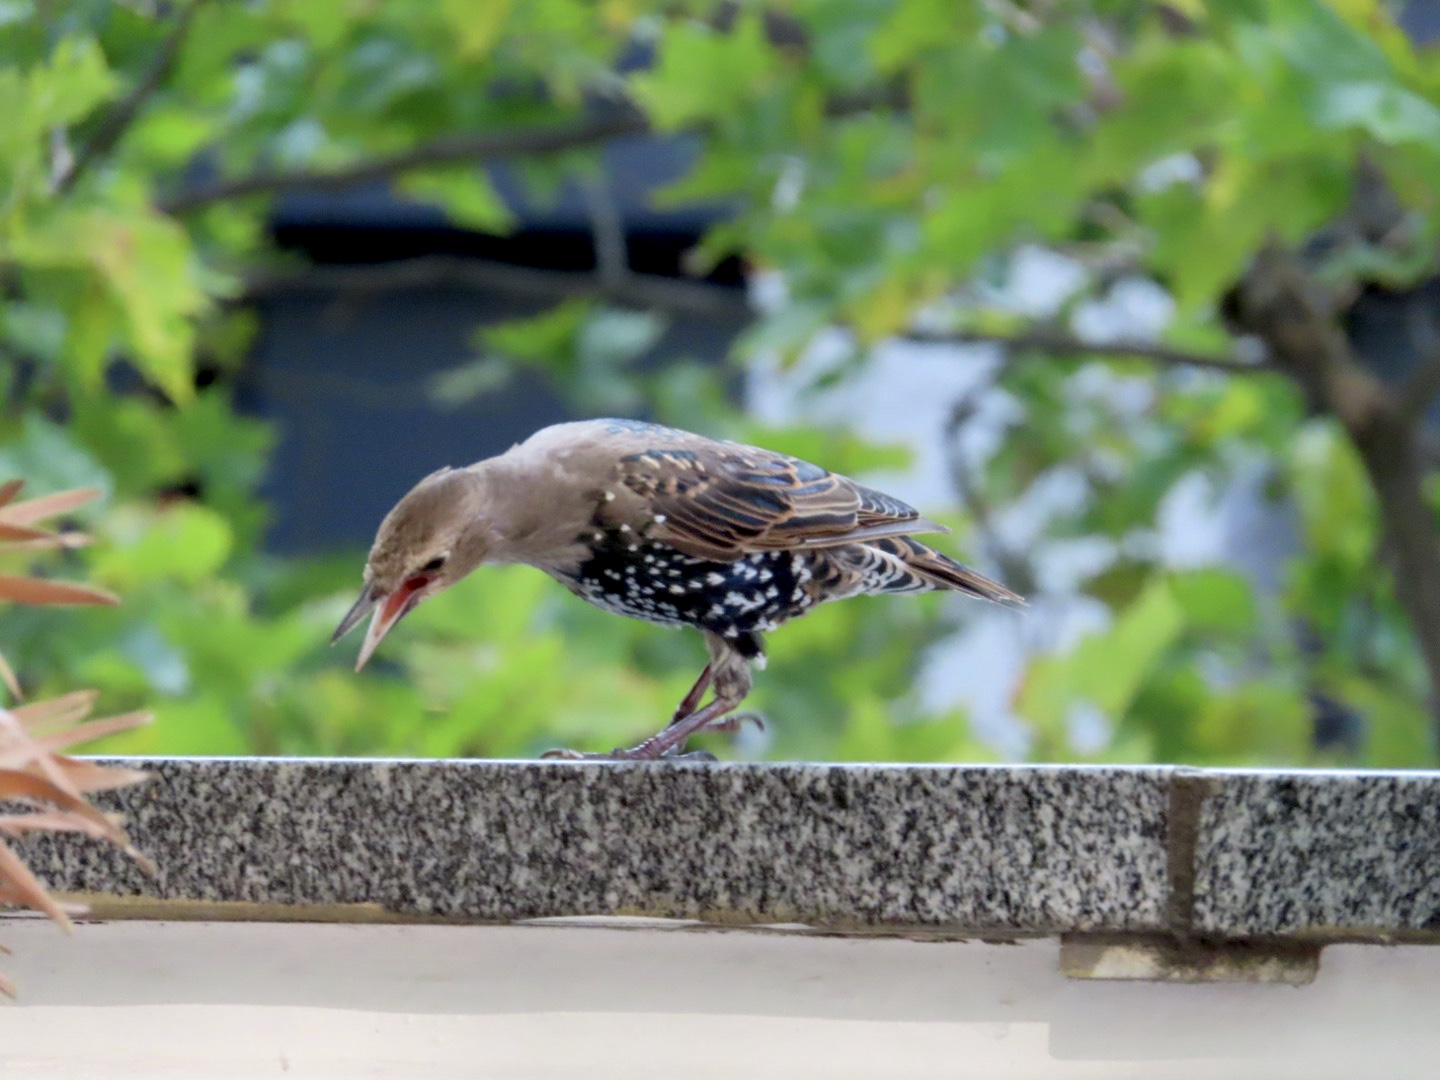 Photo: Lesley Scoble | Starling near St Pauls, London